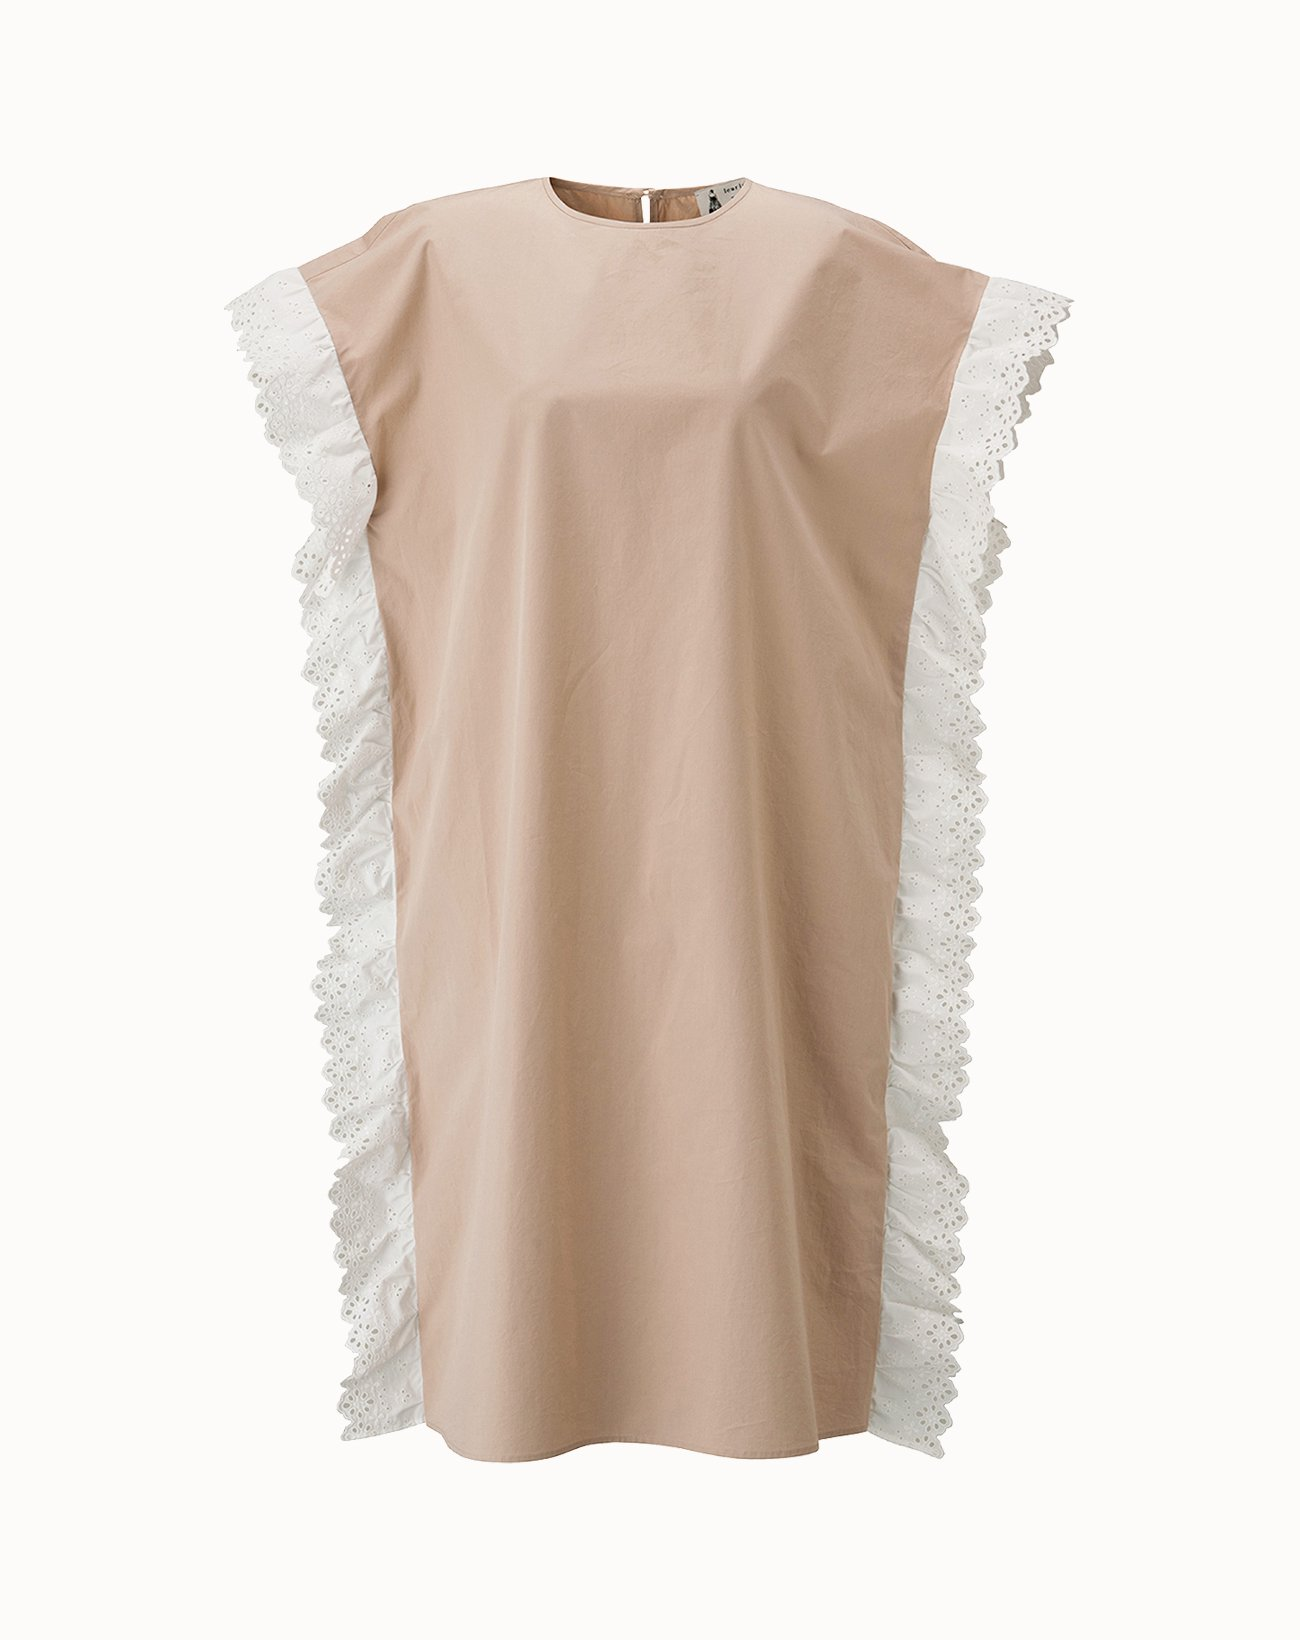 leur logette - Cotton Dress - Beige